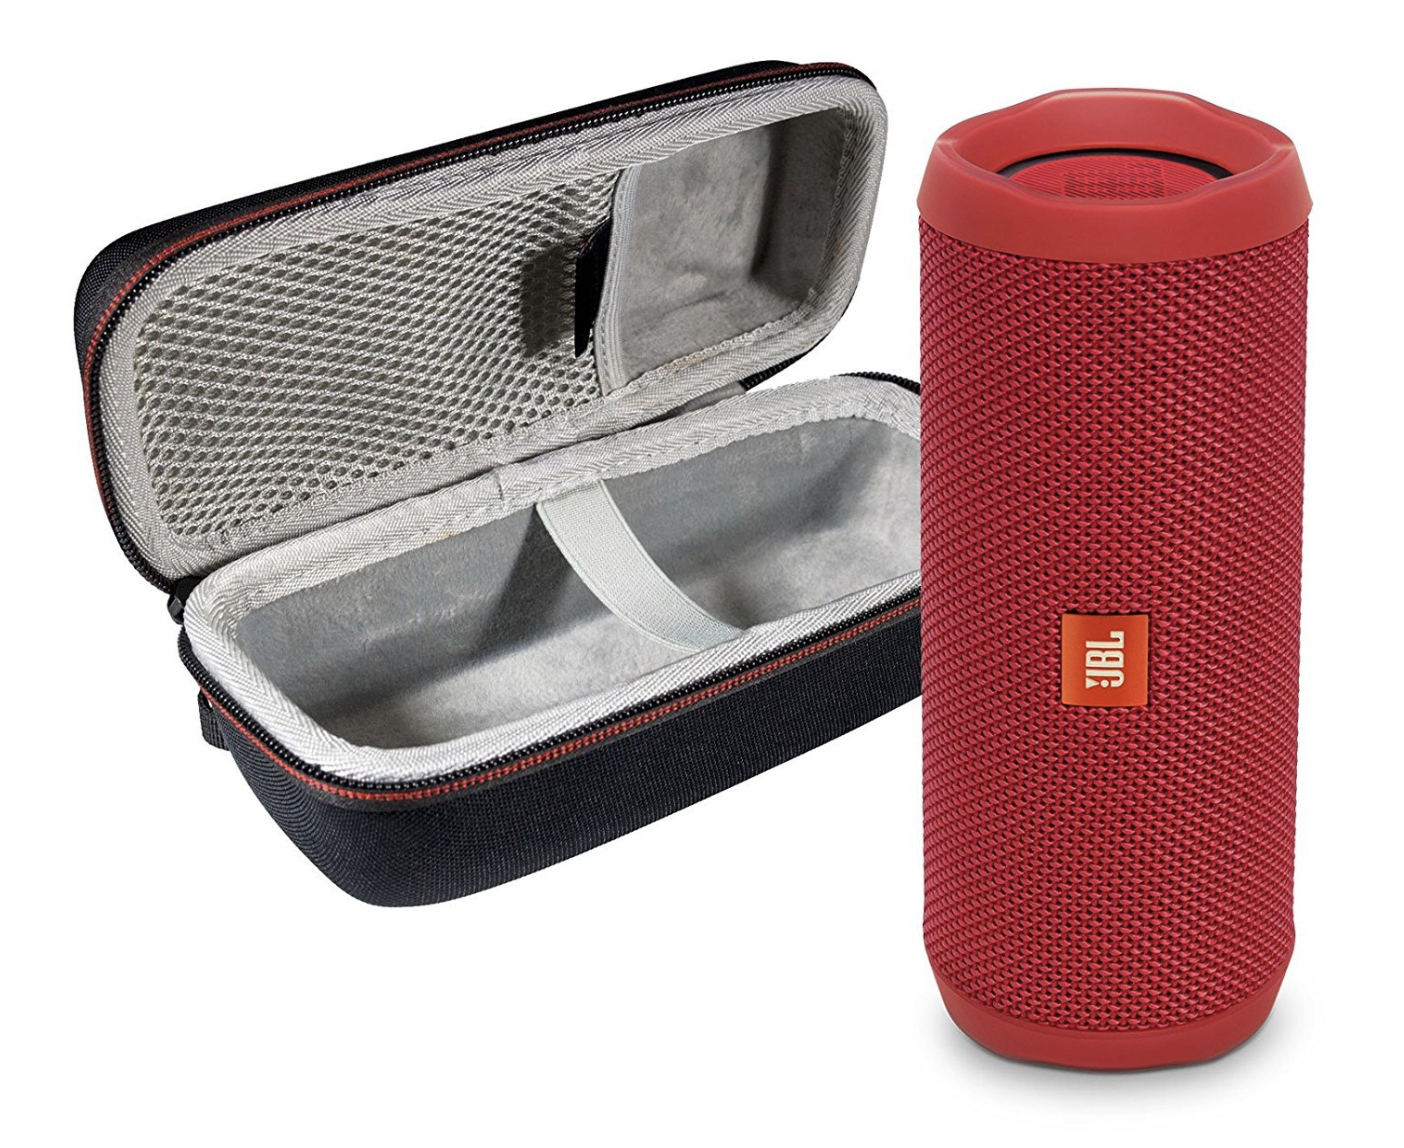 JBL Flip 4 Portable Bluetooth Wireless Speaker Bundle with Protective Travel Case